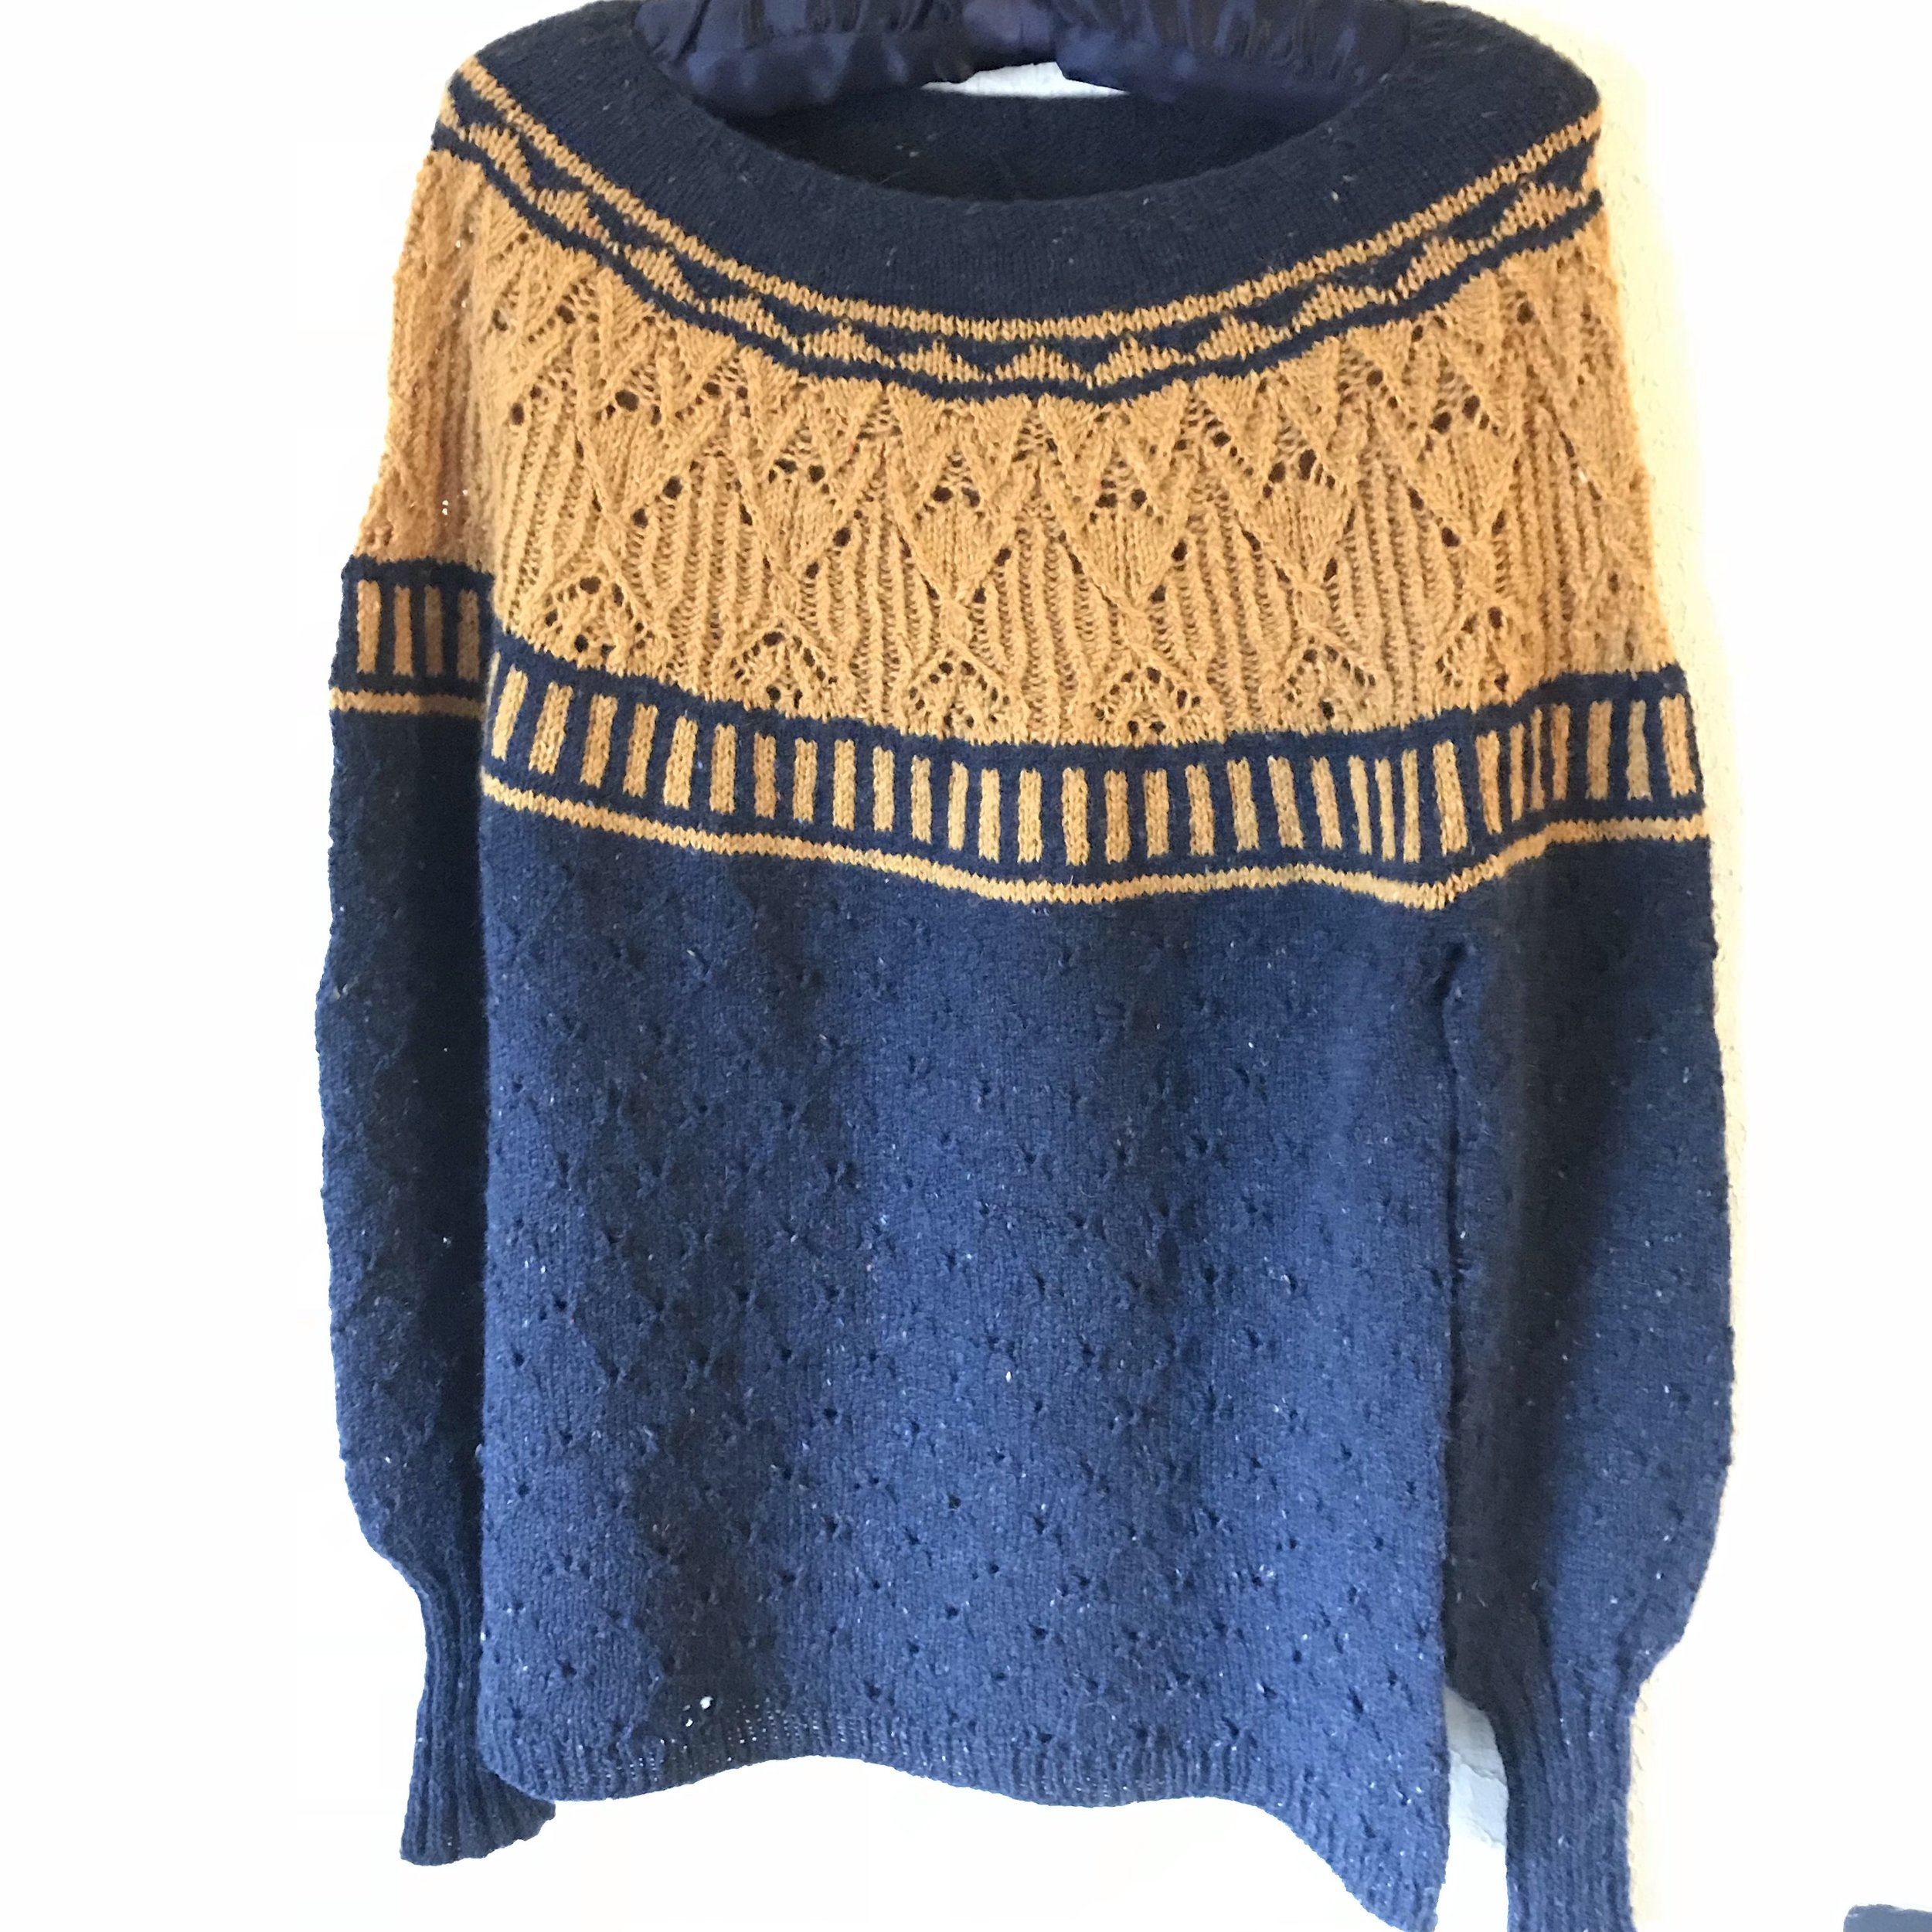 Zweig, finally! - It didn't take an exorbitant amount of time, really, it's just that fingering weight sweaters do actually take longer. Something about there being more stitches. But Zweig is finished, if a bit damp, and it is a lovely design that was a pleasure to knit.